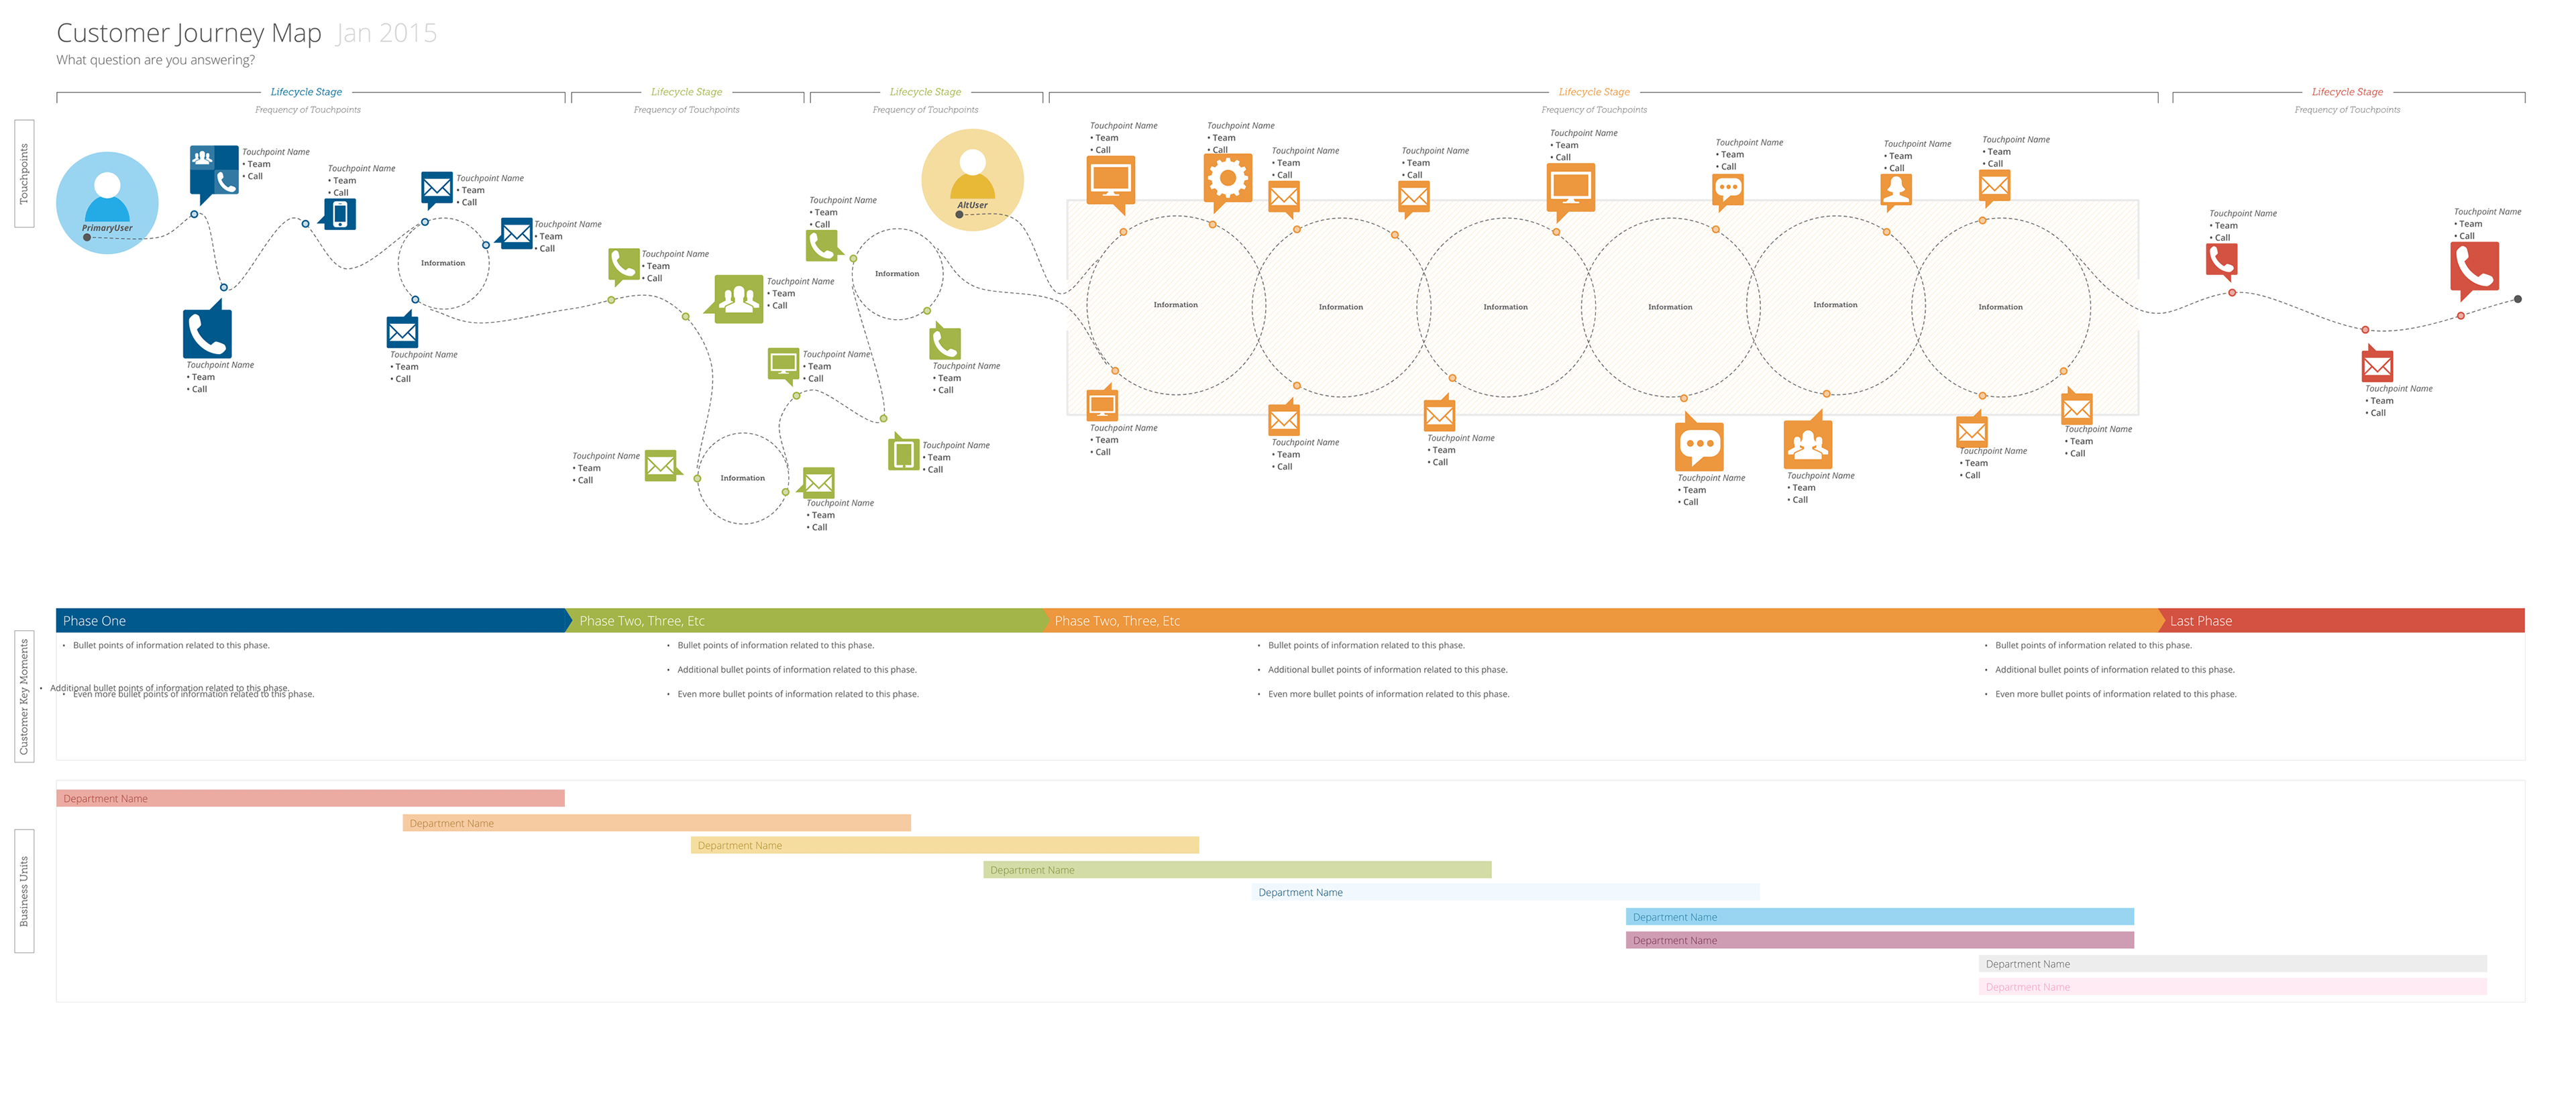 Customer Journey Map Template Stencils On Behance - Customer journey map touchpoints